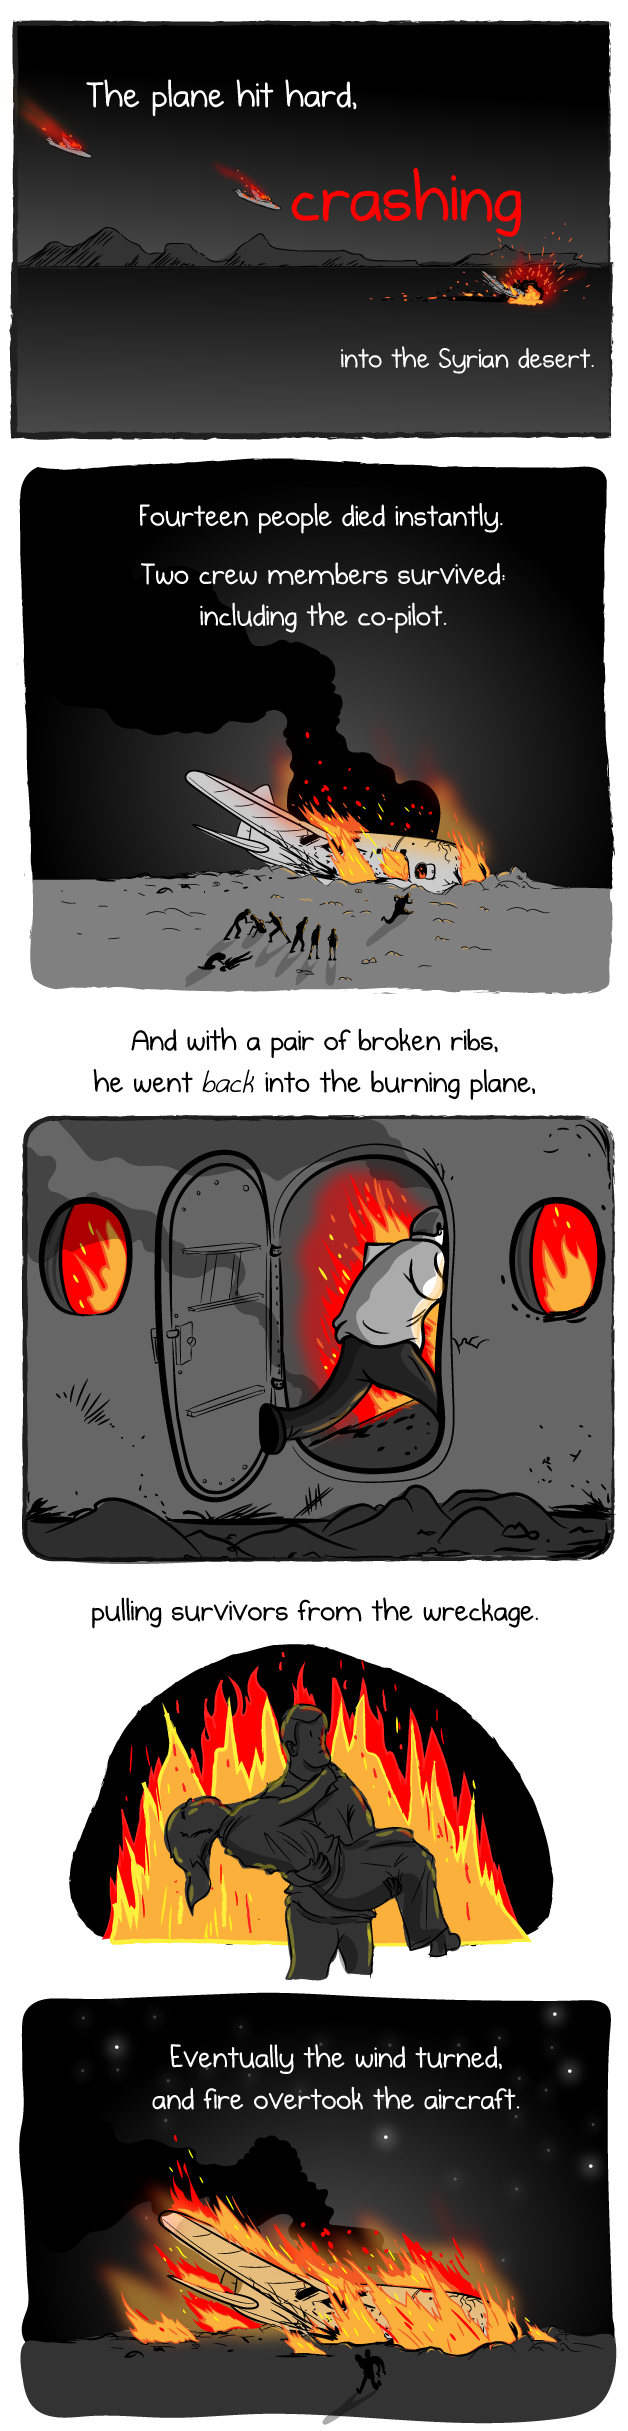 It's going to be okay  - The Oatmeal